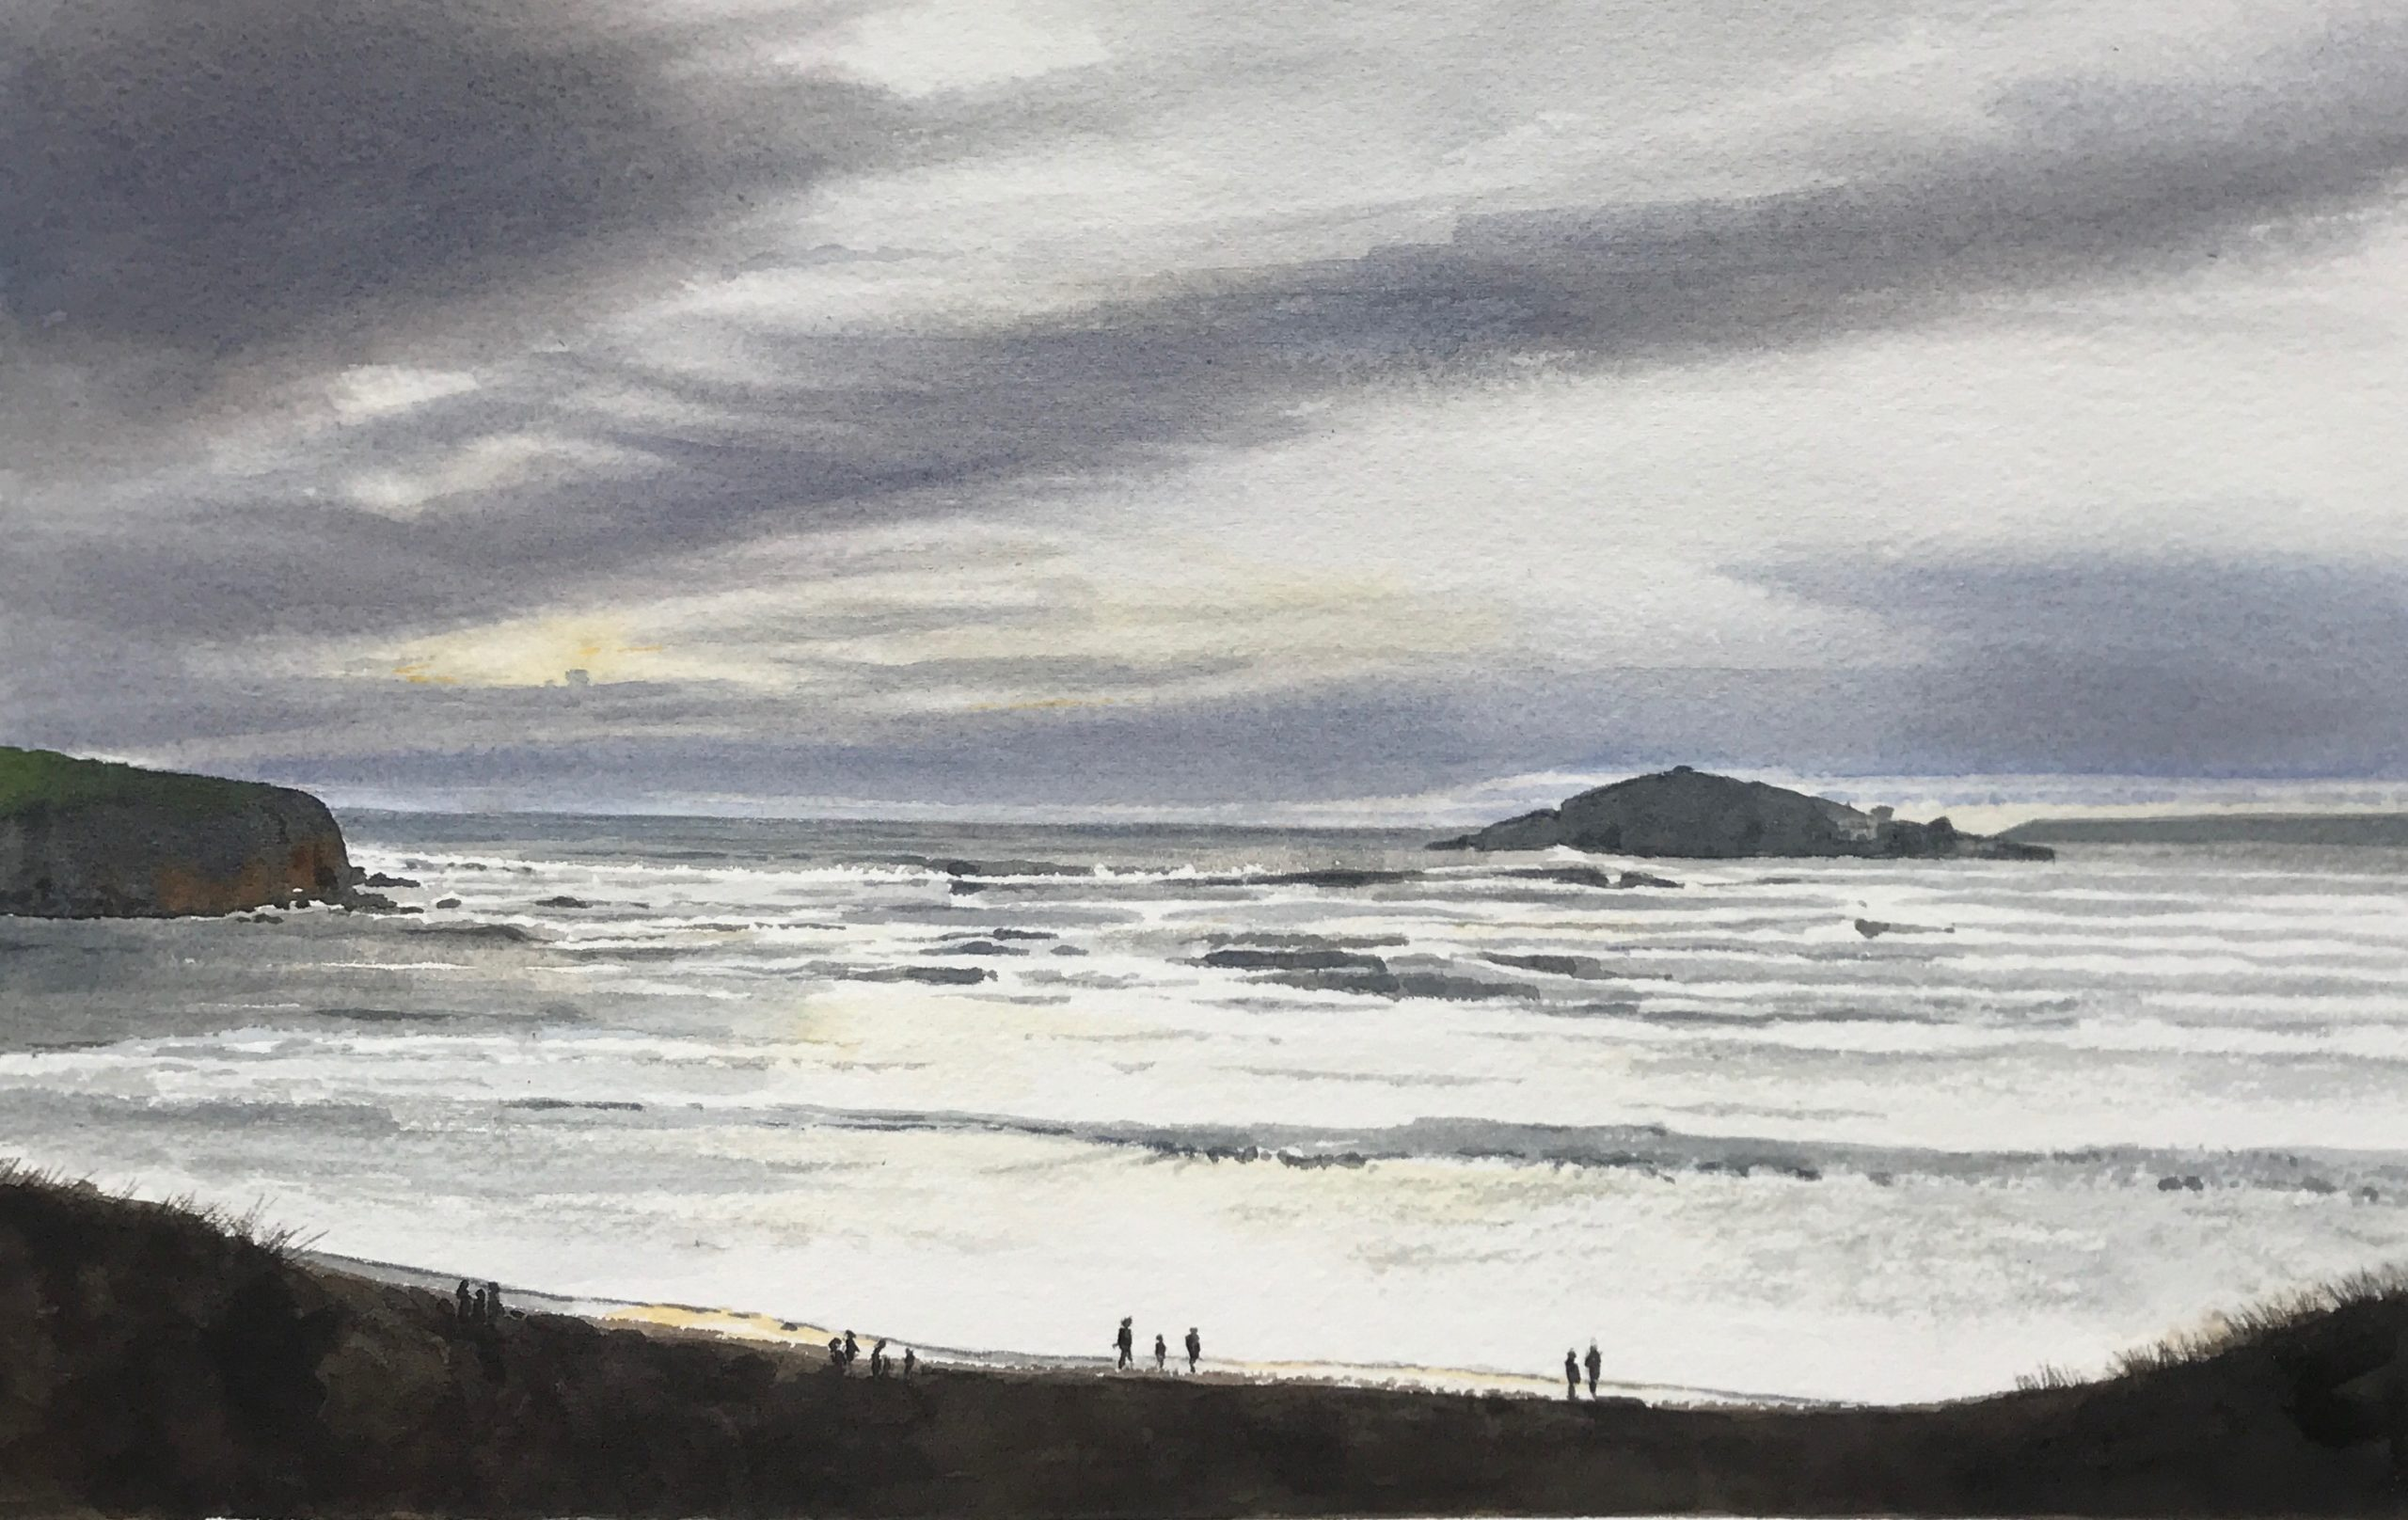 White Horses on the charge - Original Watercolour by Devon artist Eleanor King